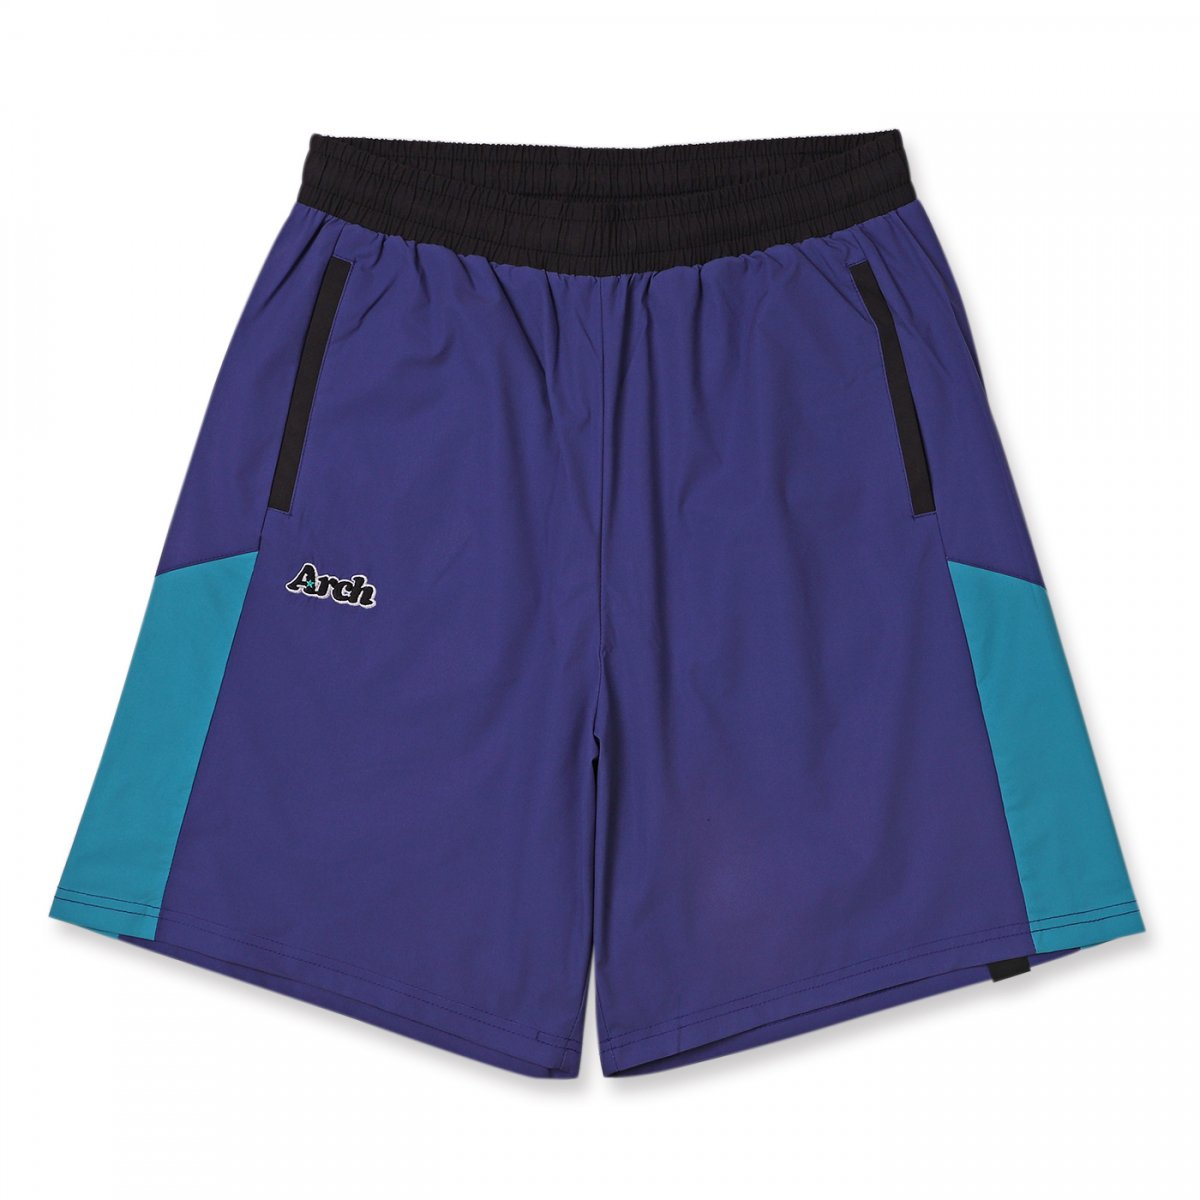 rise paneled shorts 【purple】